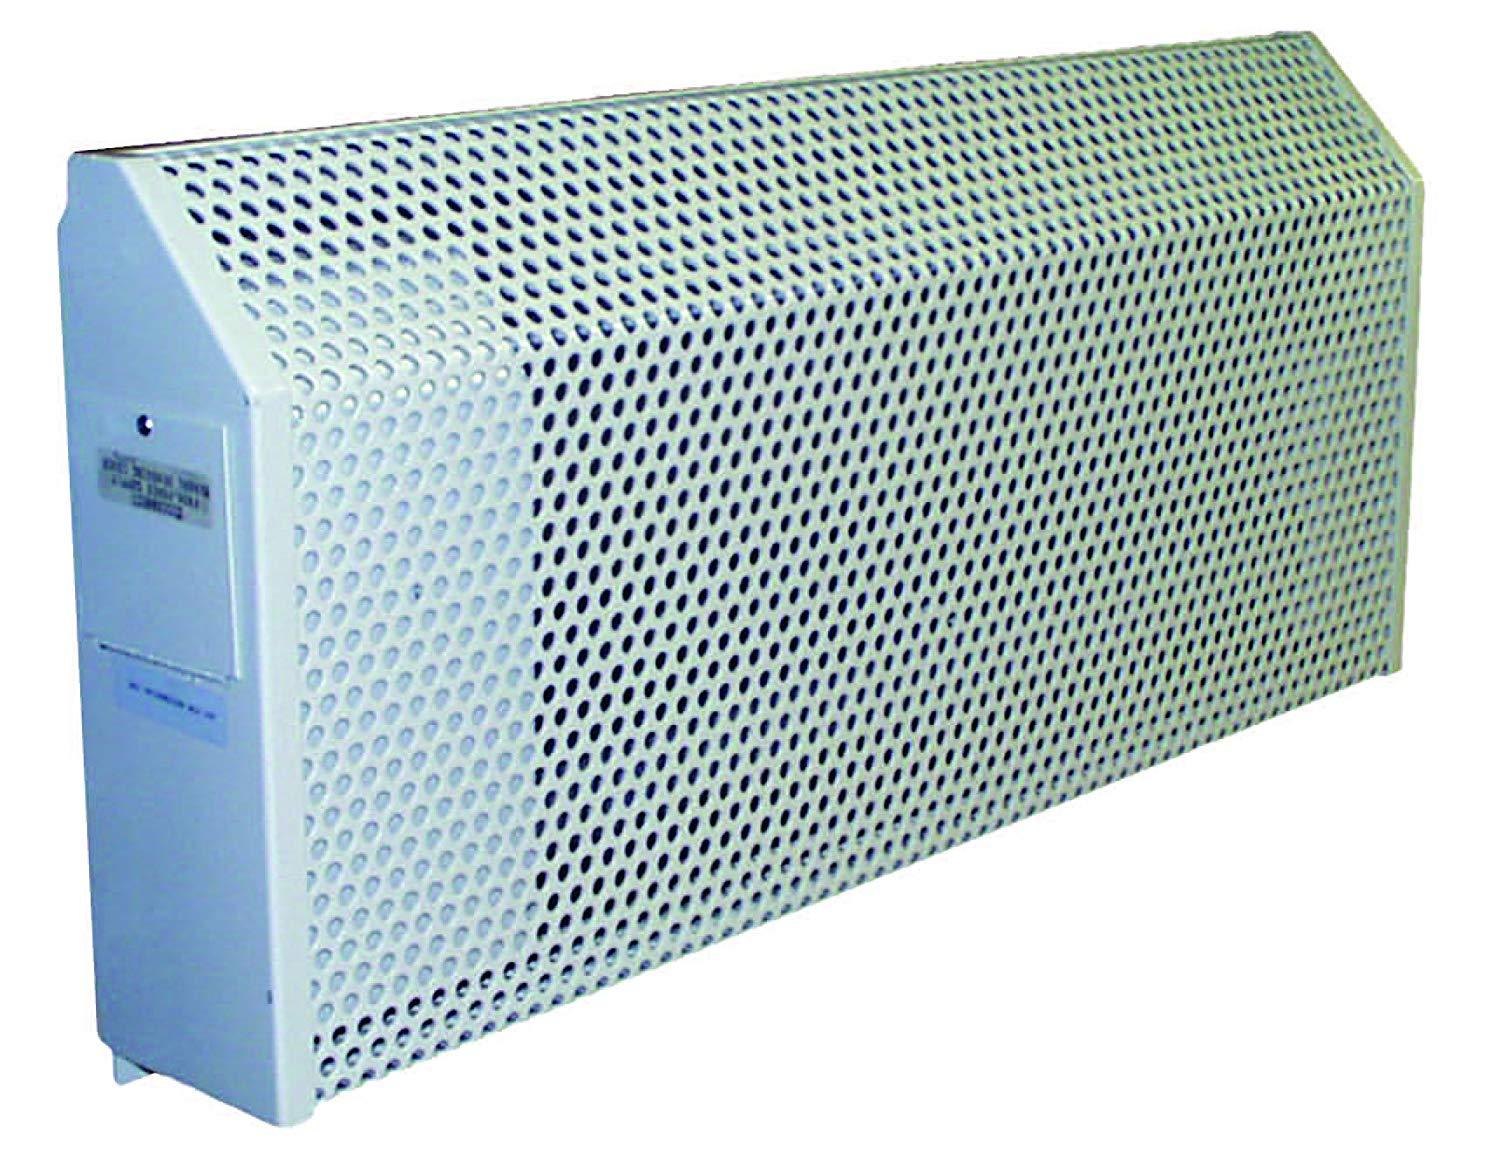 TPI 500W 480V Institutional Wall Convector - P8801050